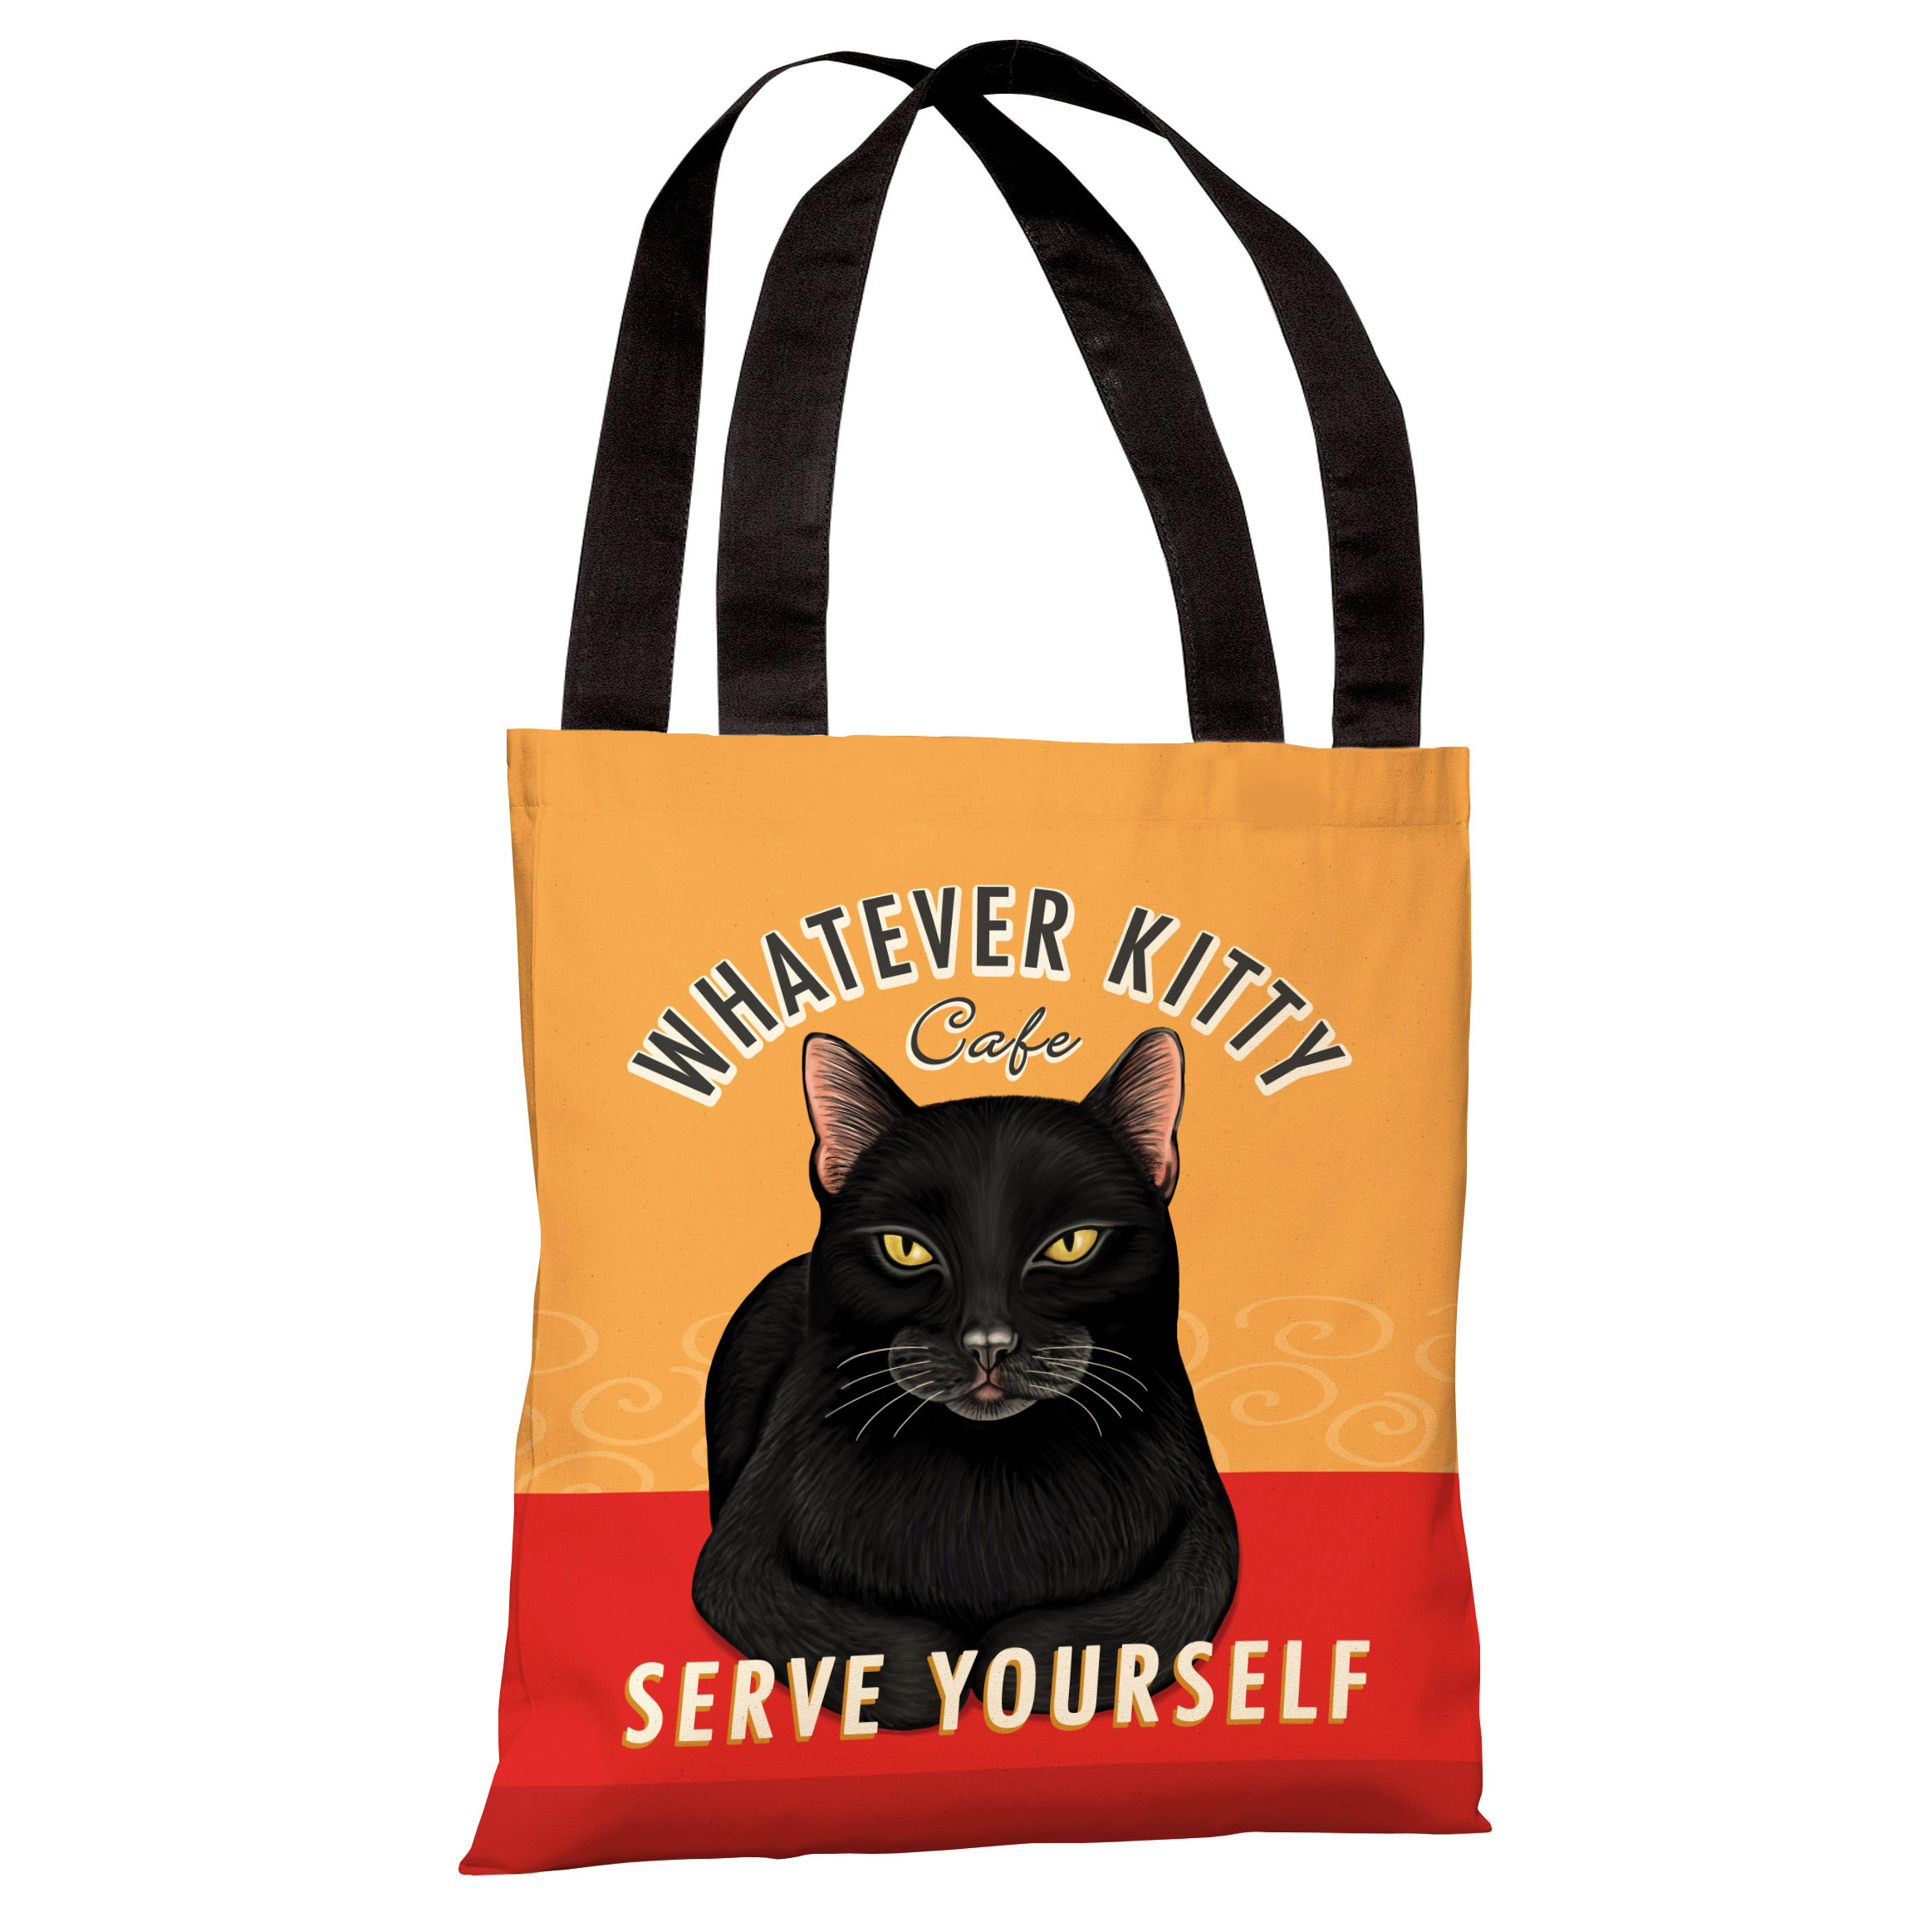 Whatever Kitty Café 16x16 Pillow by Retro Pets